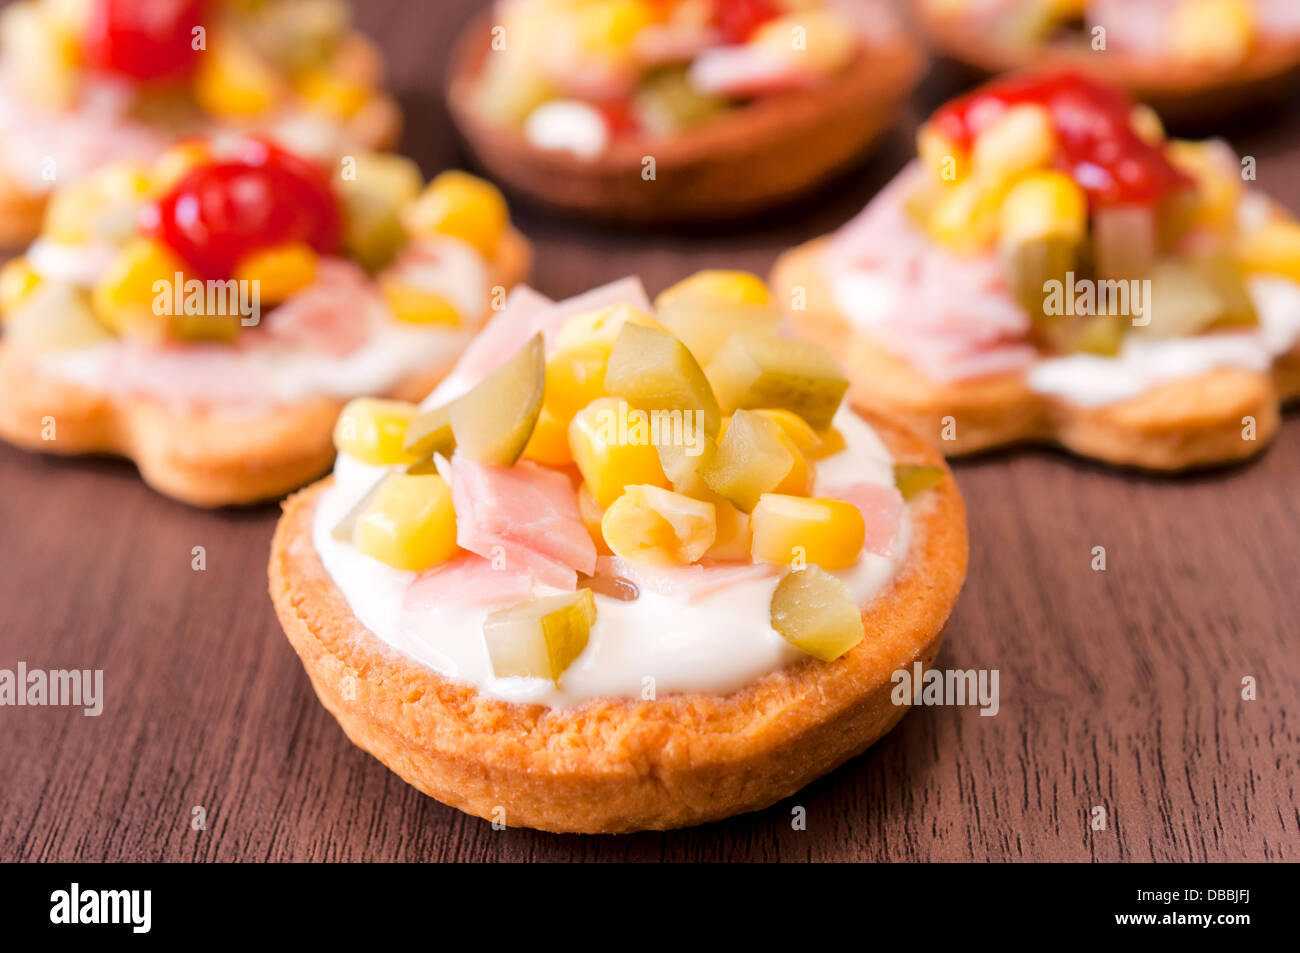 Appetizer filled with vegetables, ham and mayonnaise on wooden table - Stock Image